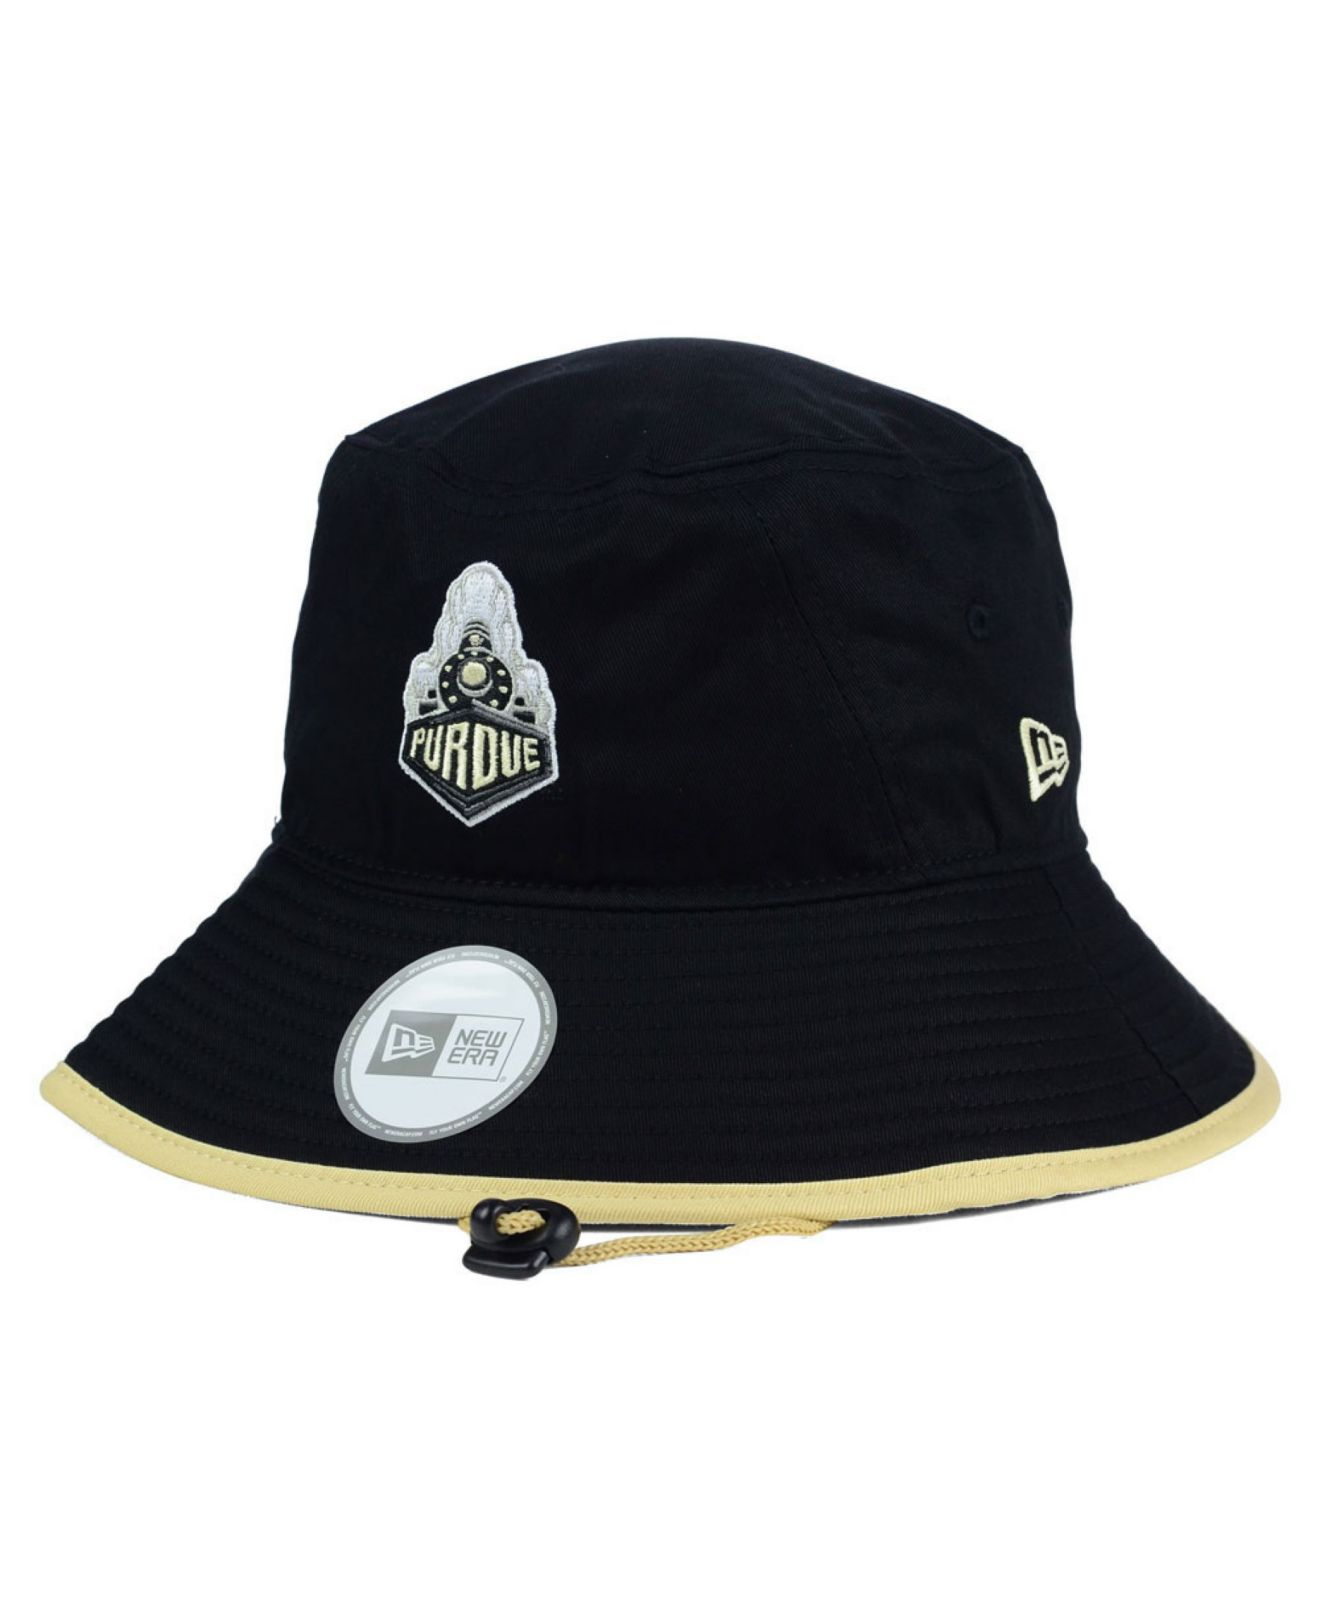 newest collection 38c6d f9a2a ... norway lyst ktz purdue boilermakers tip bucket hat in black for men  aa5aa 4c7fe